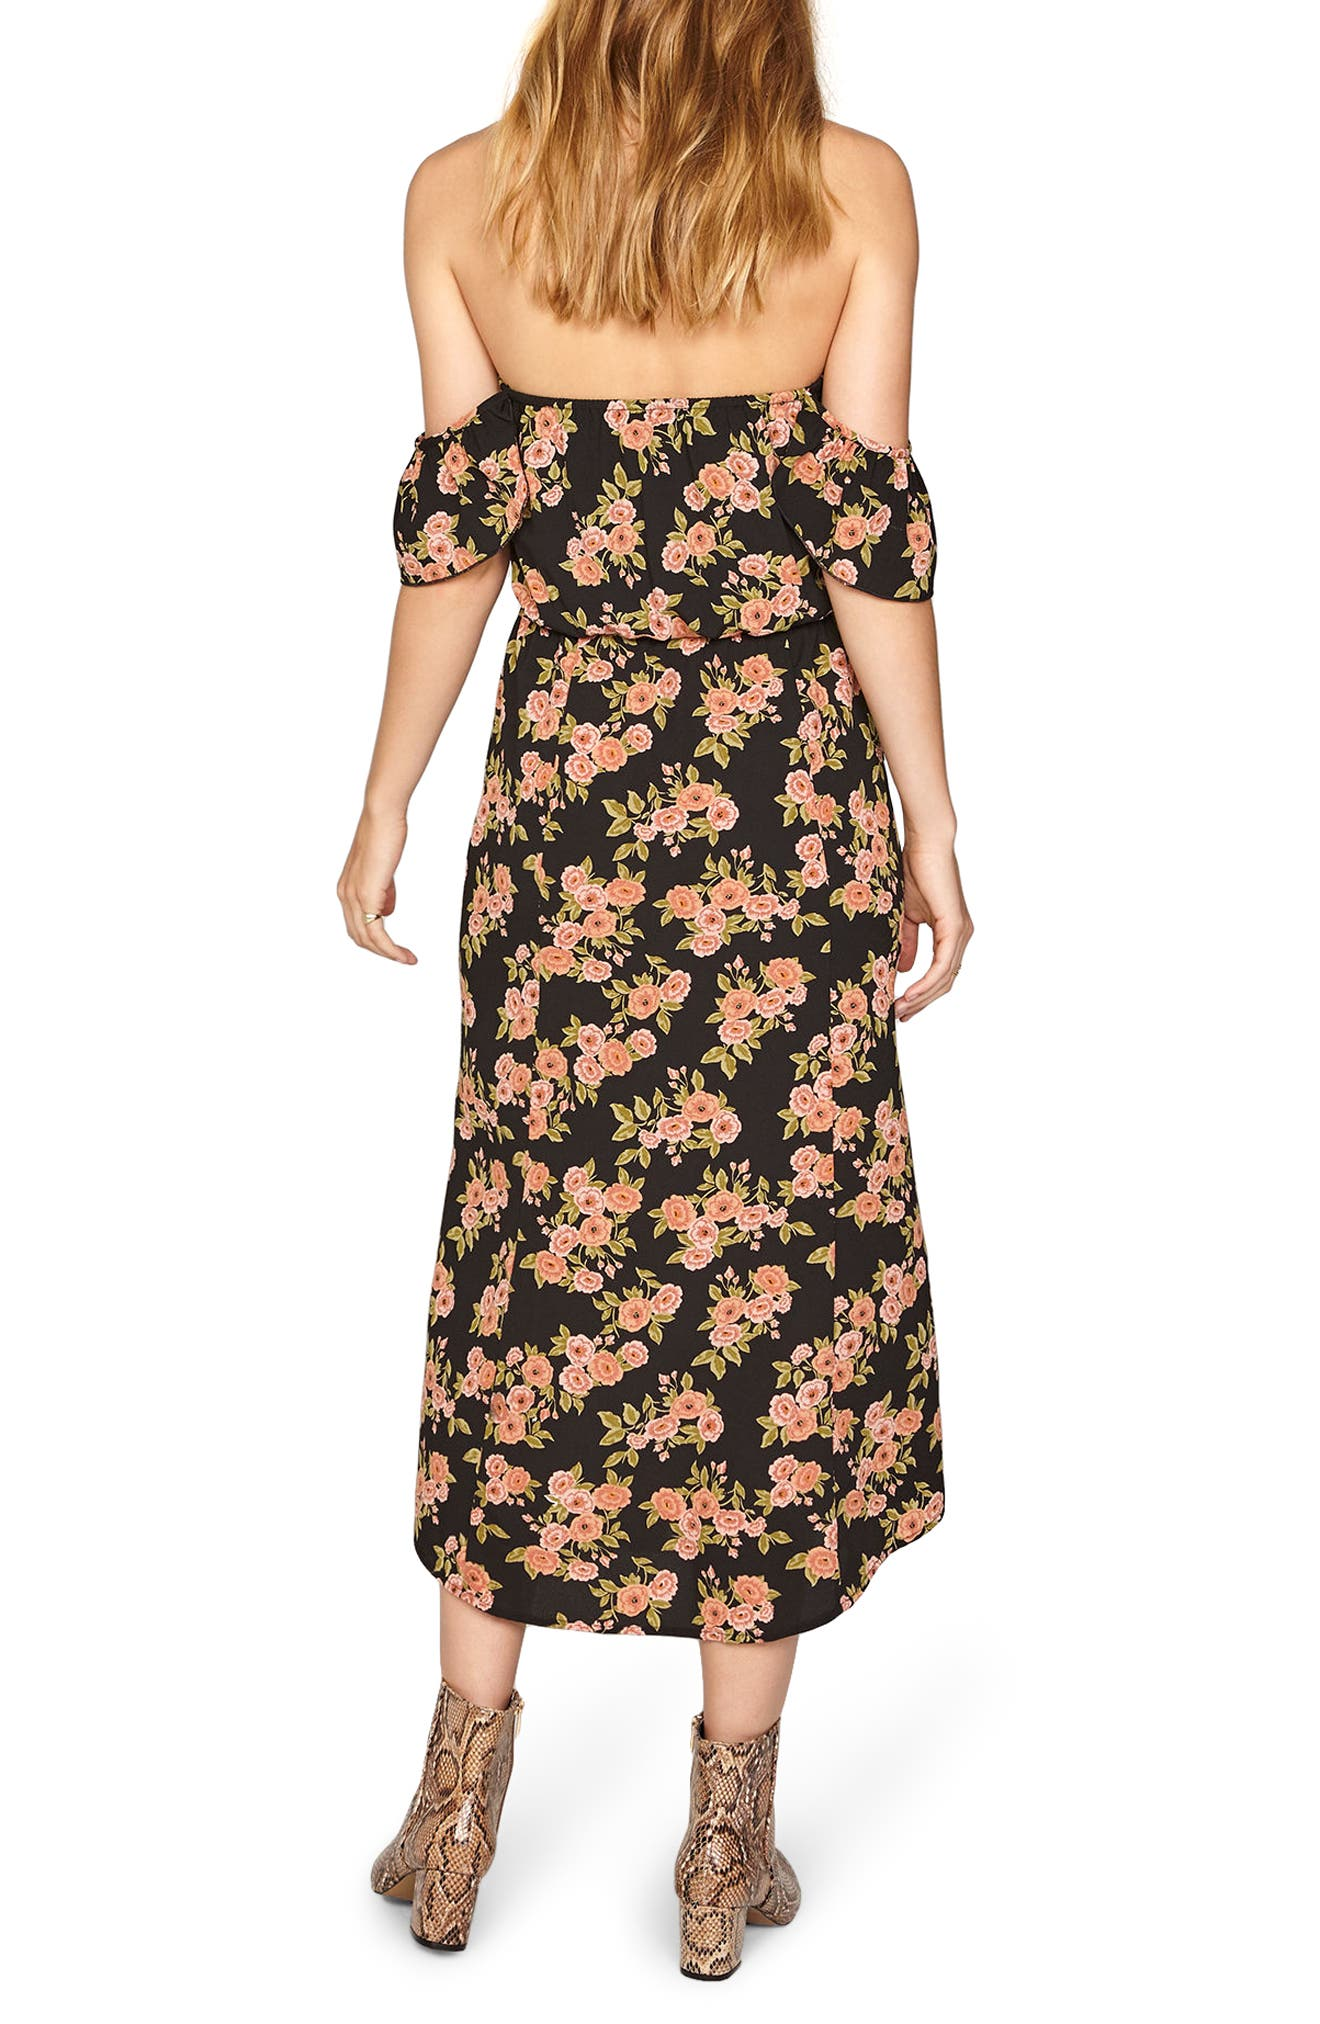 Sweeter Than You Off the Shoulder Midi Dress,                             Alternate thumbnail 2, color,                             001